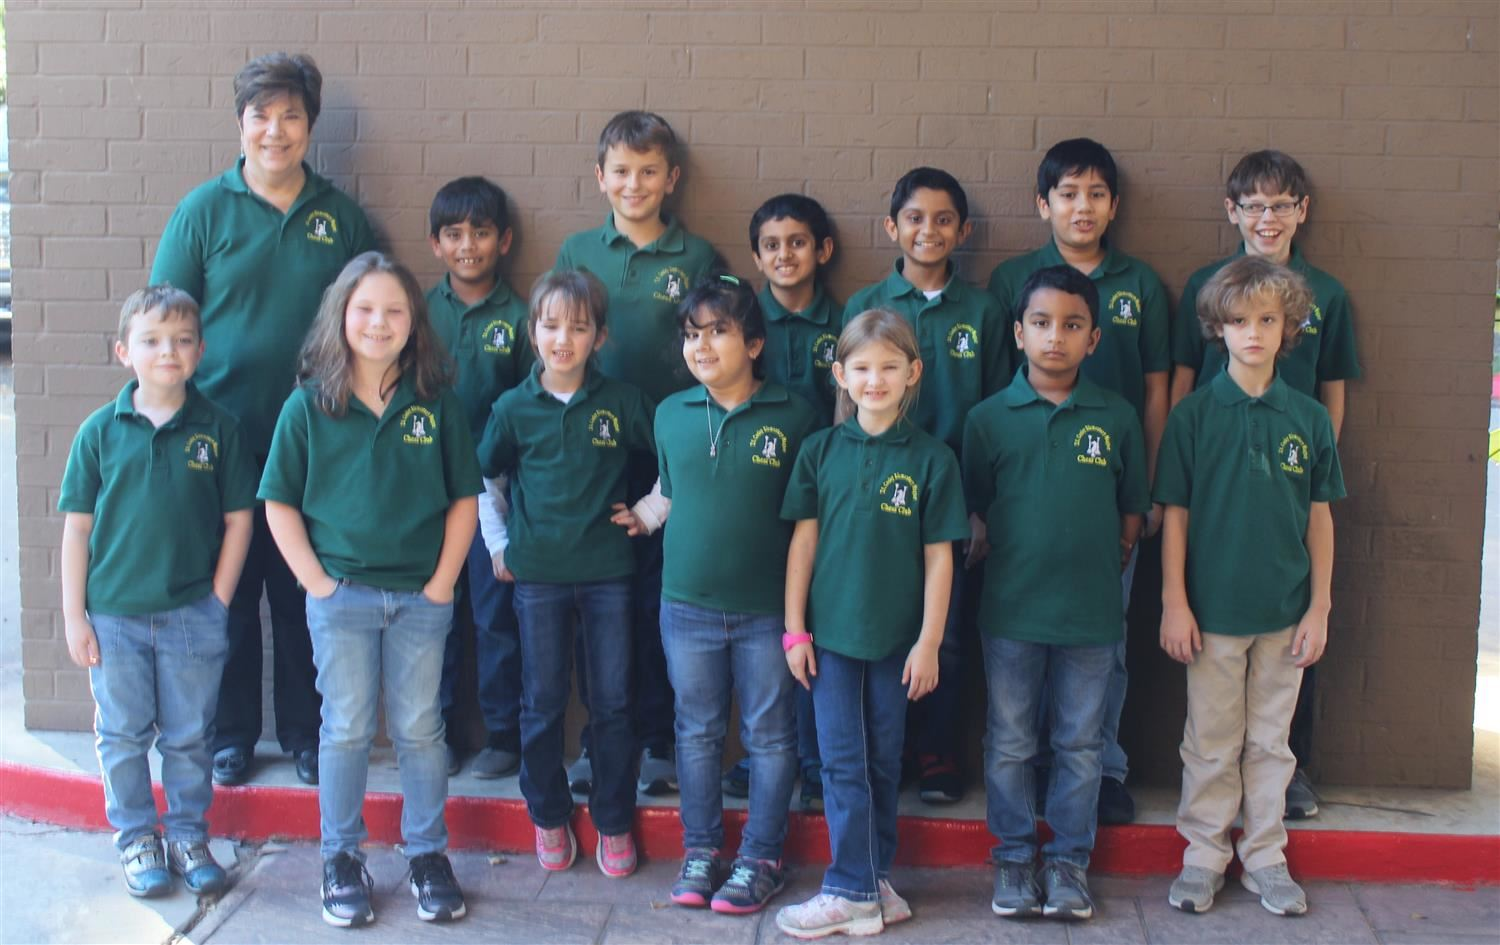 T.S. Cooley Chess Teams Bring Home Trophies from Texas